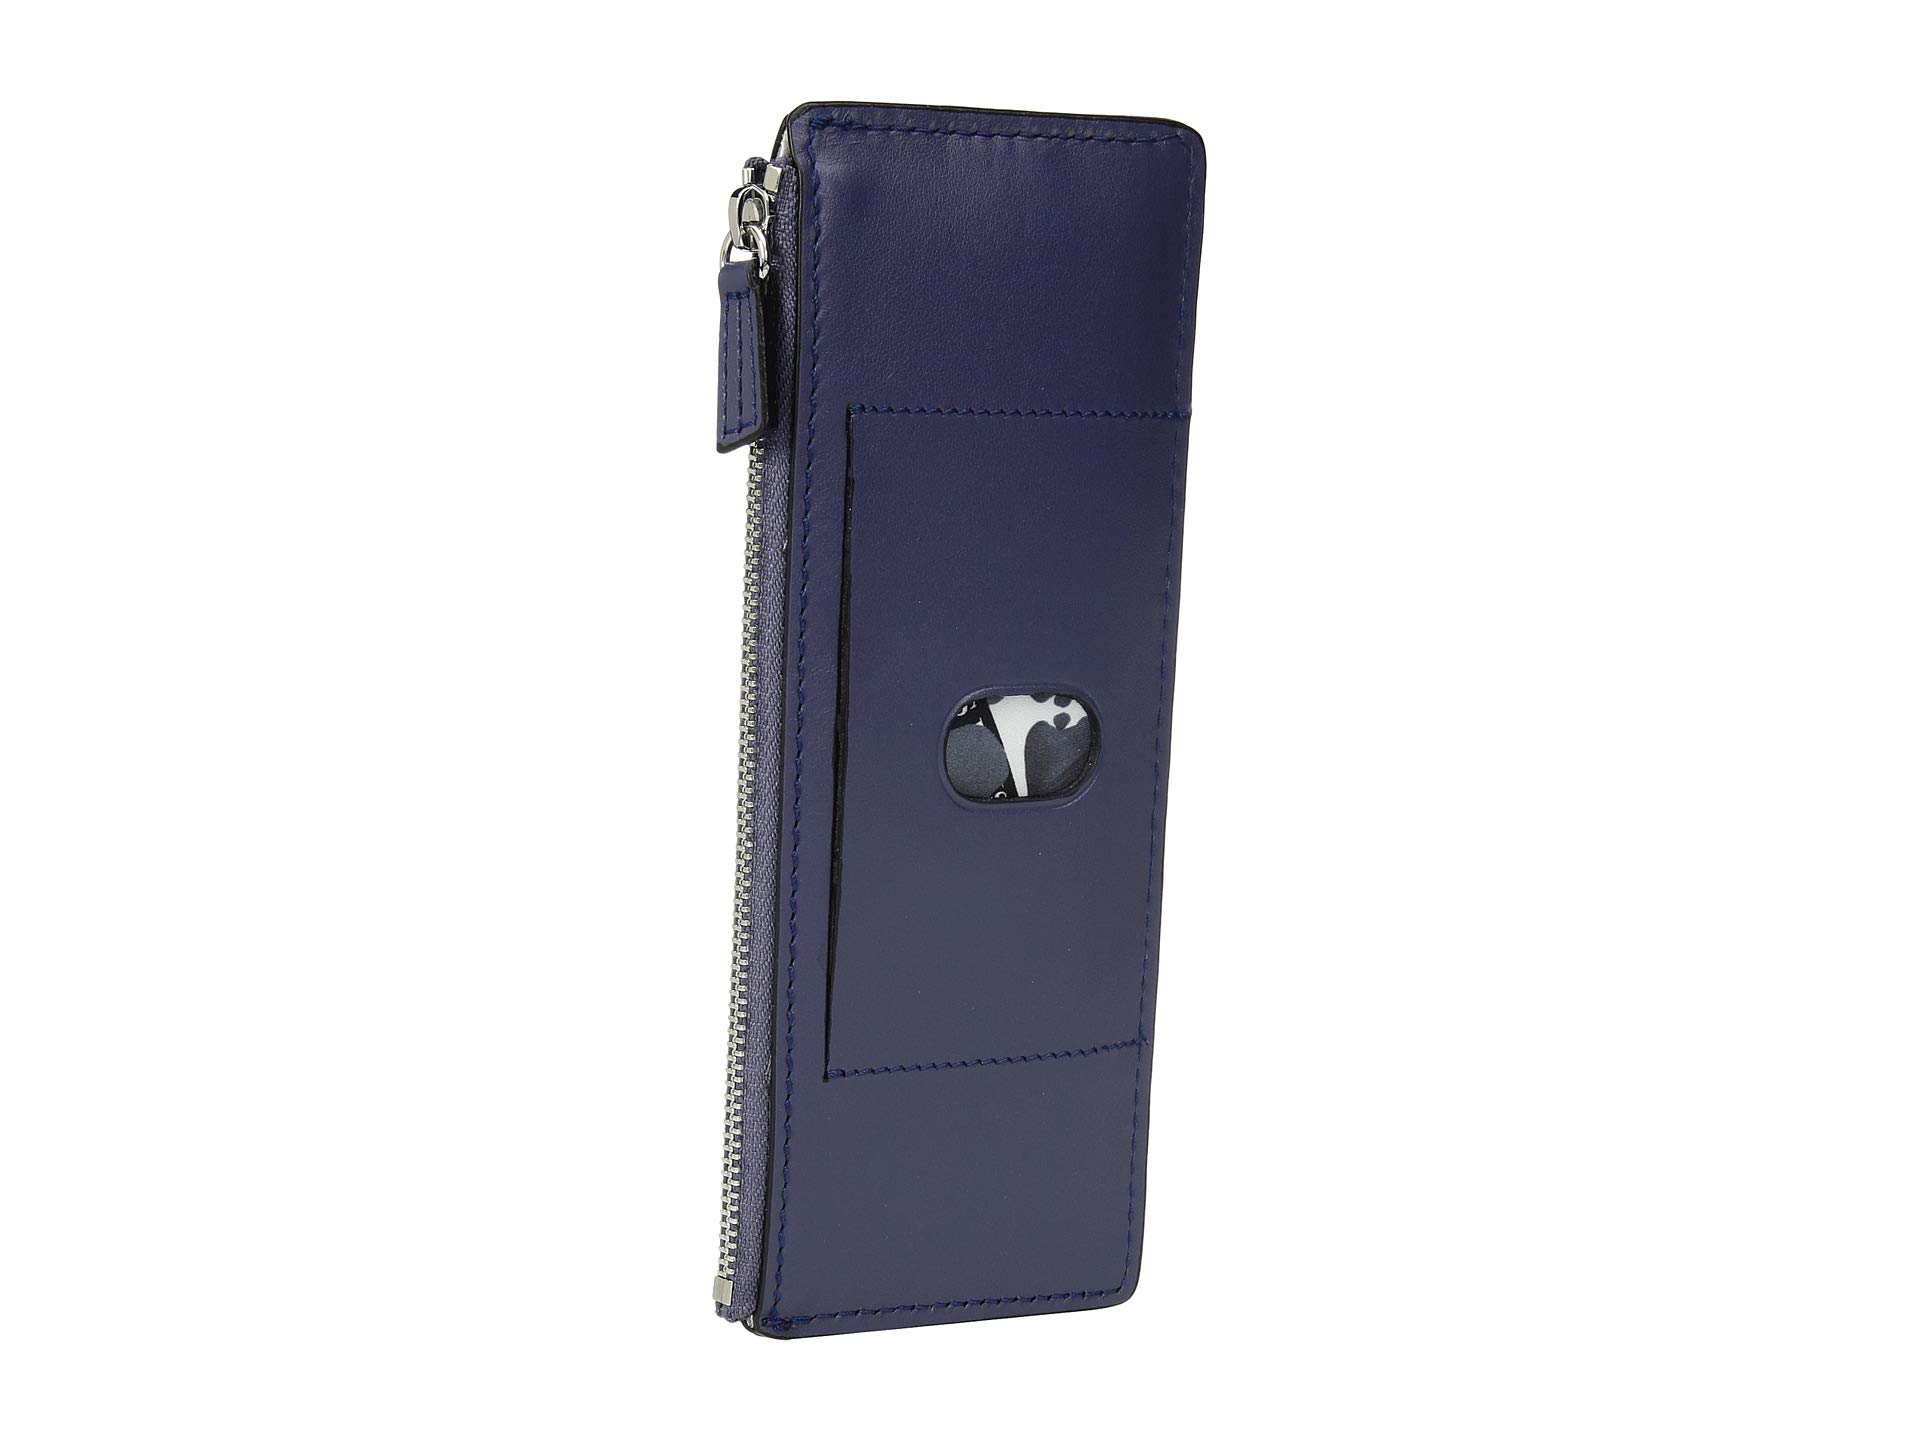 Accessories Zipper Deep Lodis Credit Saratoga Pocket Violet Case With Card PYFdYxS